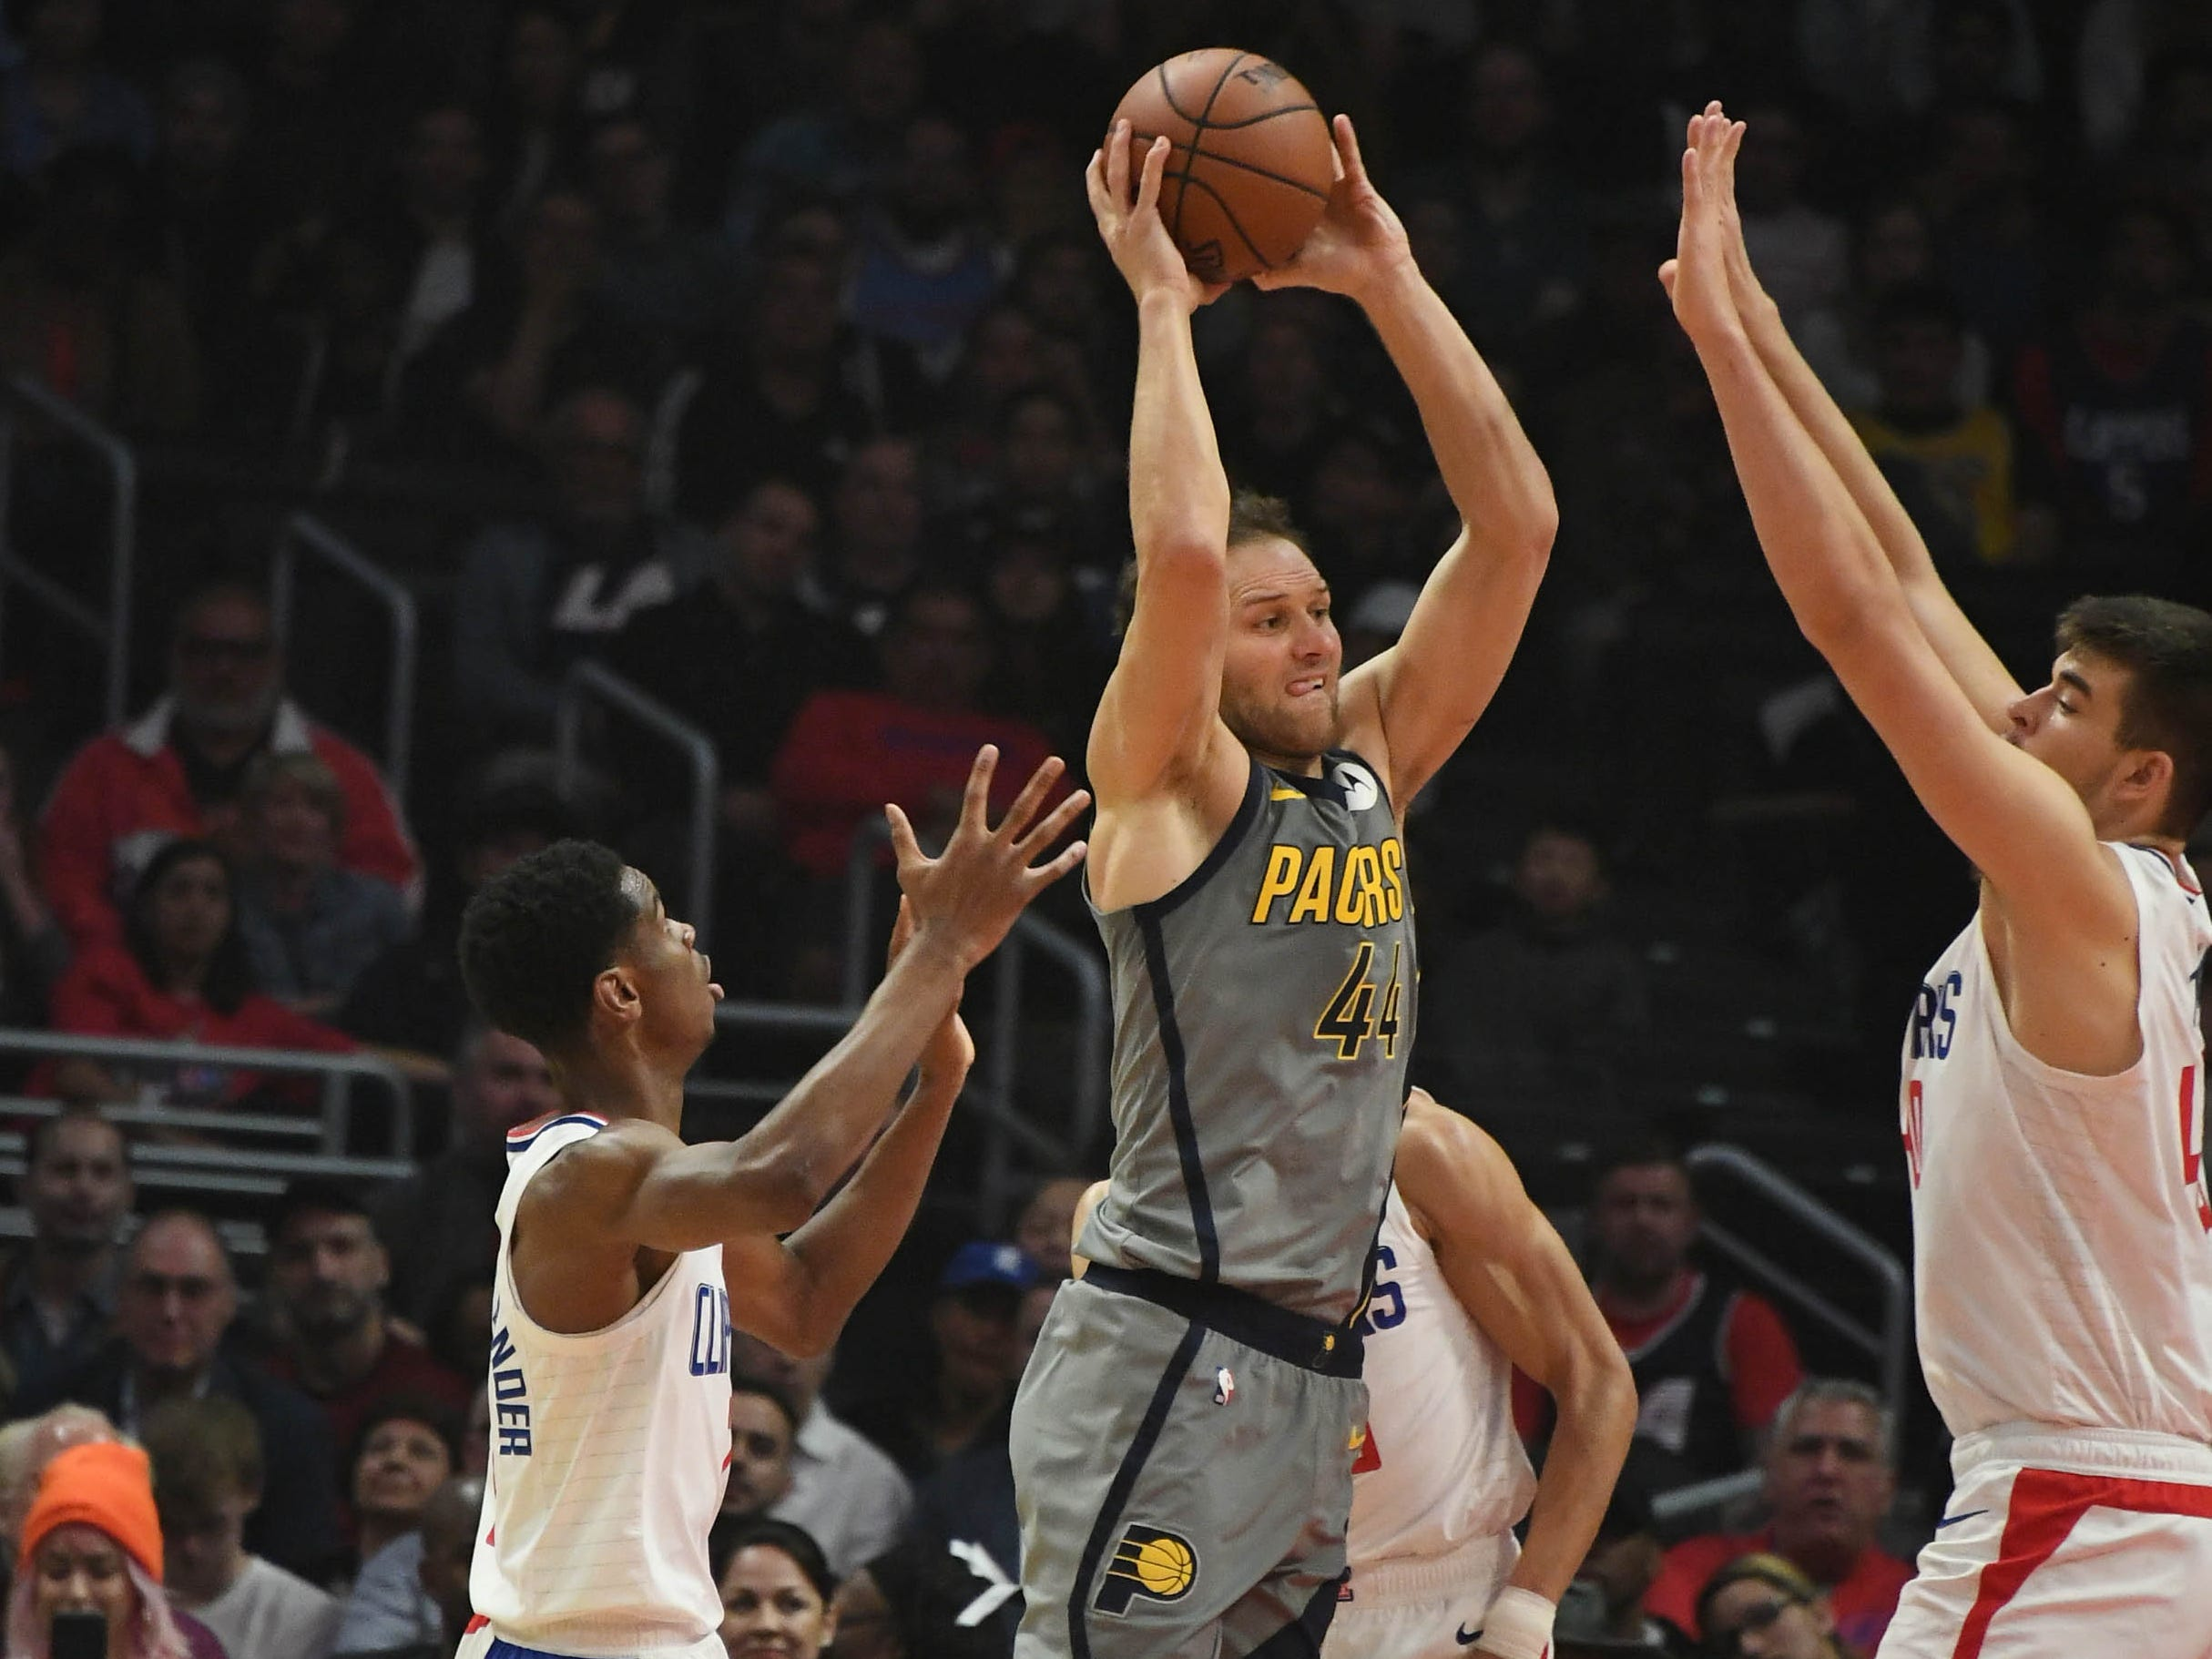 Mar 19, 2019; Los Angeles, CA, USA; Indiana Pacers forward Bojan Bogdanovic (44) passes the ball away from LA Clippers center Ivica Zubac (right) in the first half at the Staples Center.